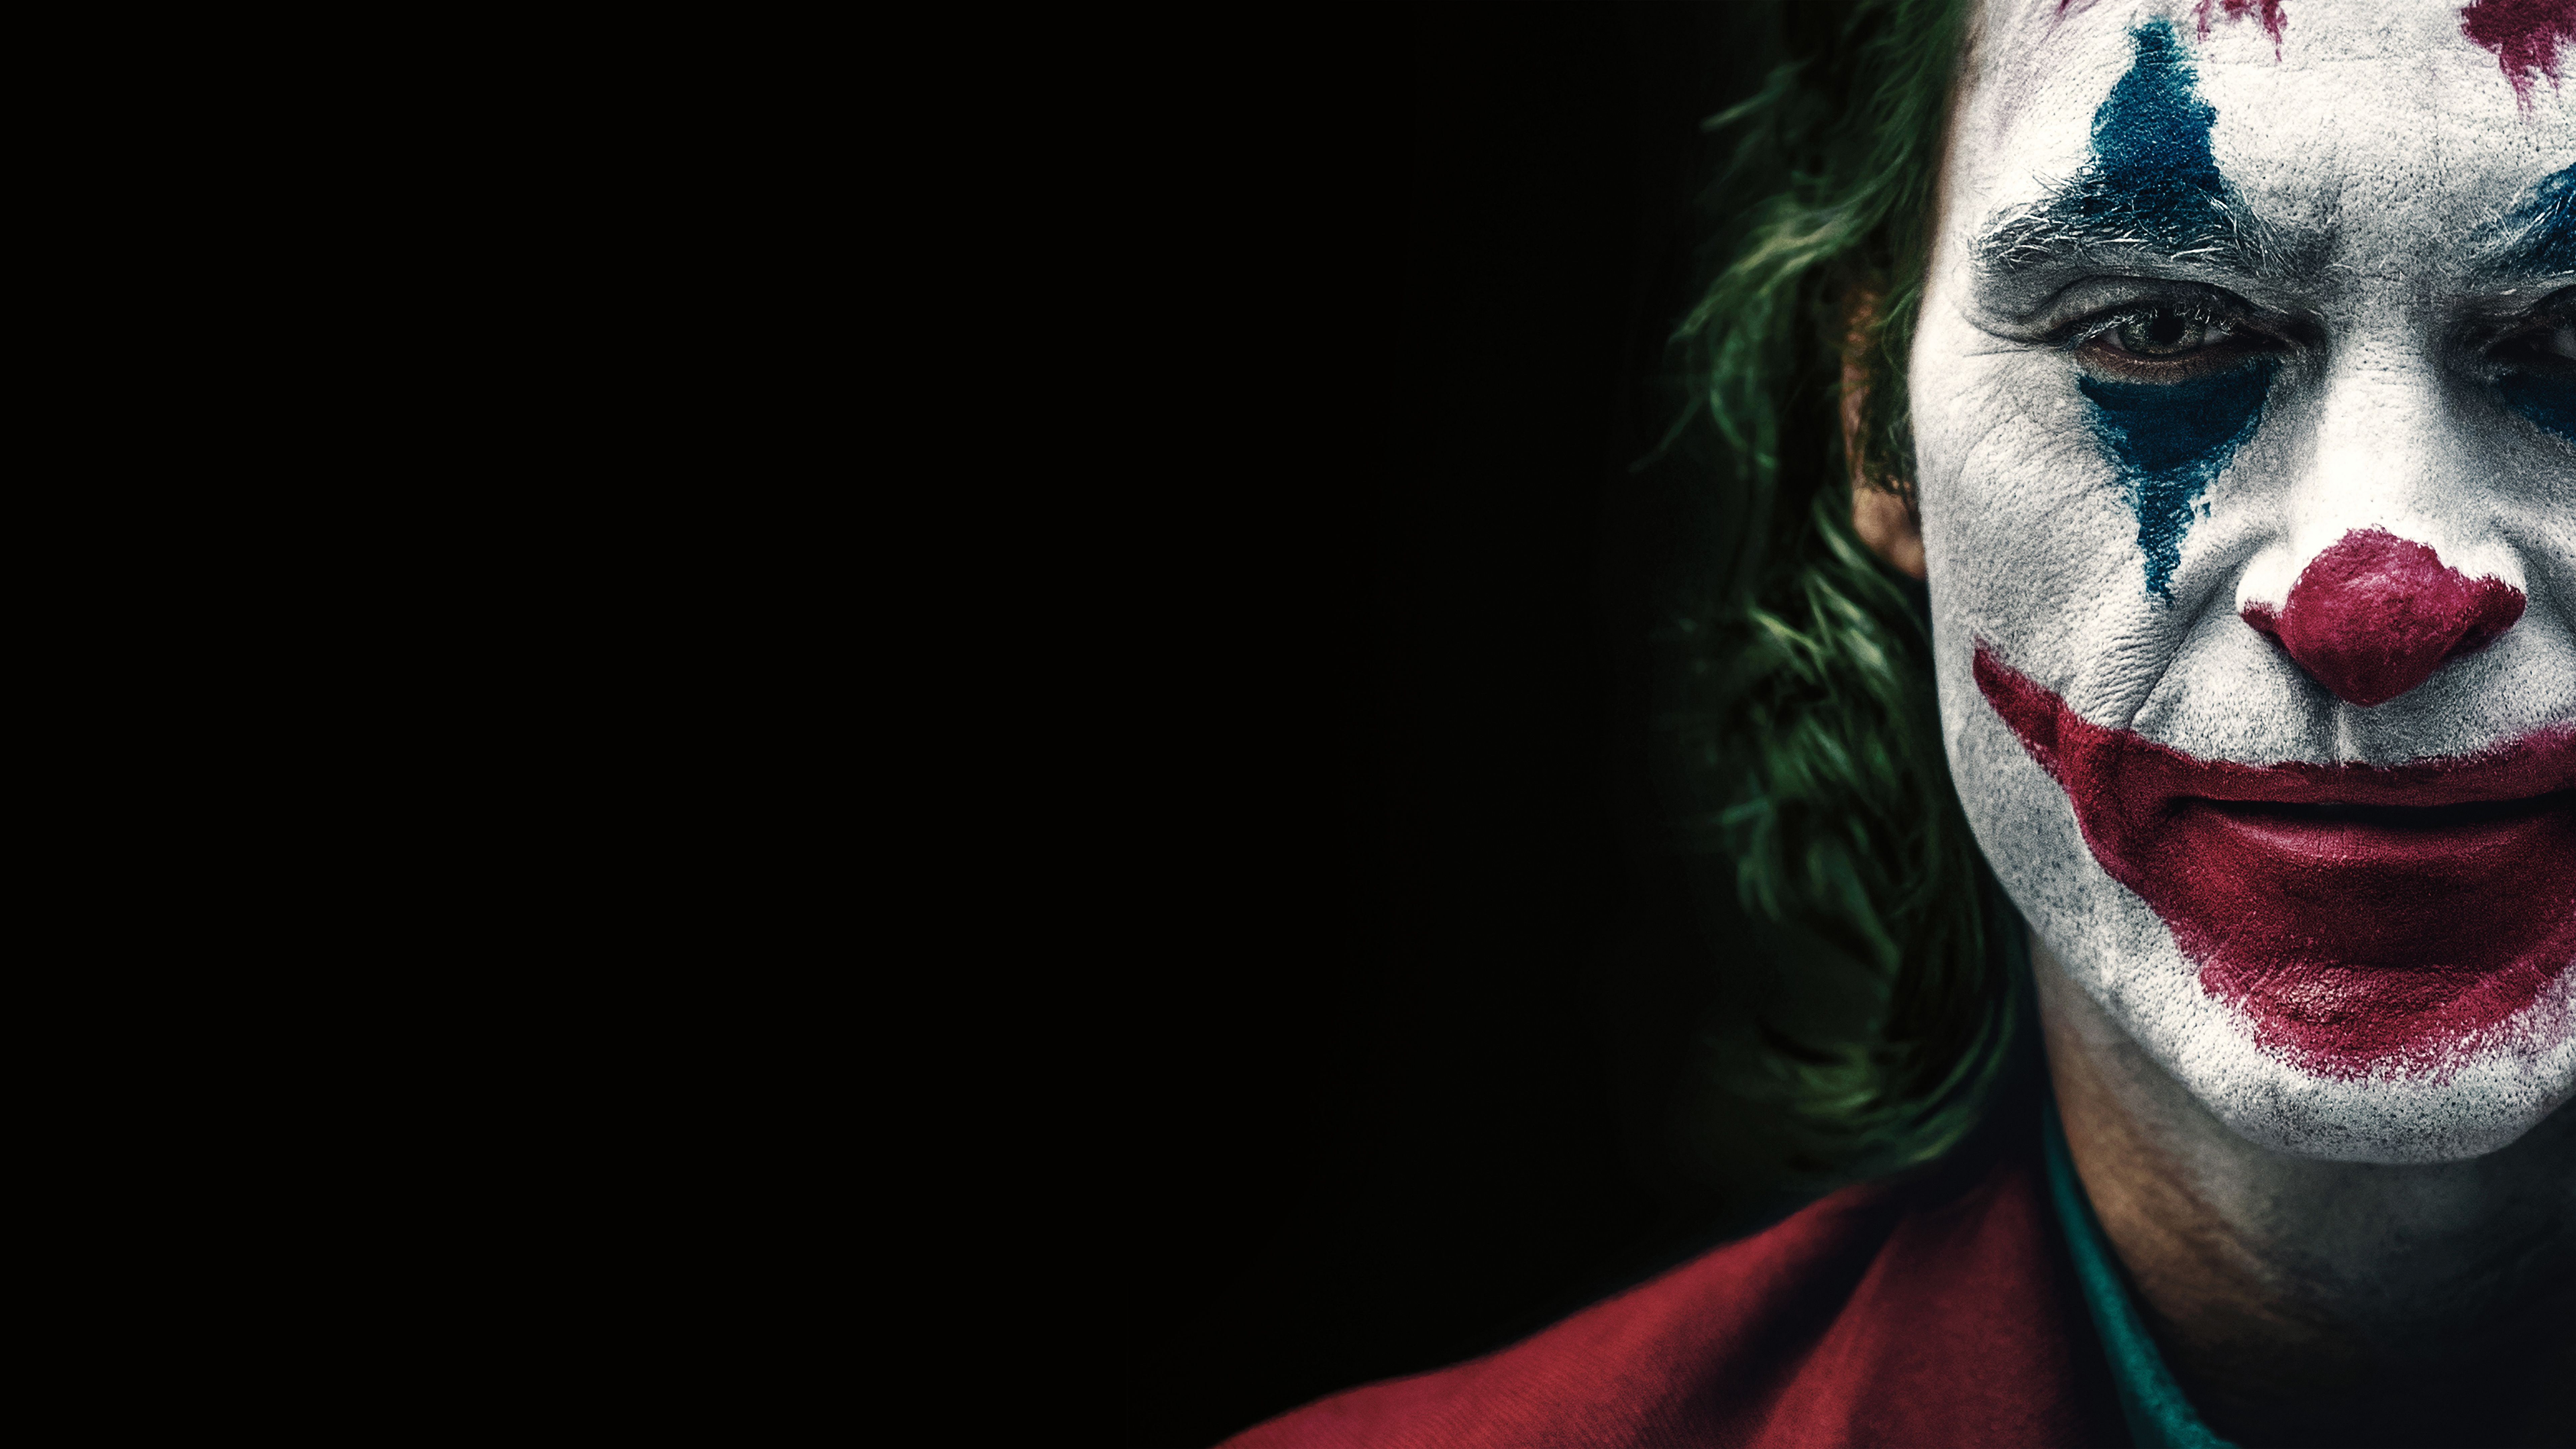 Joaquin Phoenix As Joker 2019 4k 8k Wallpapers Hd Joker Joaquin